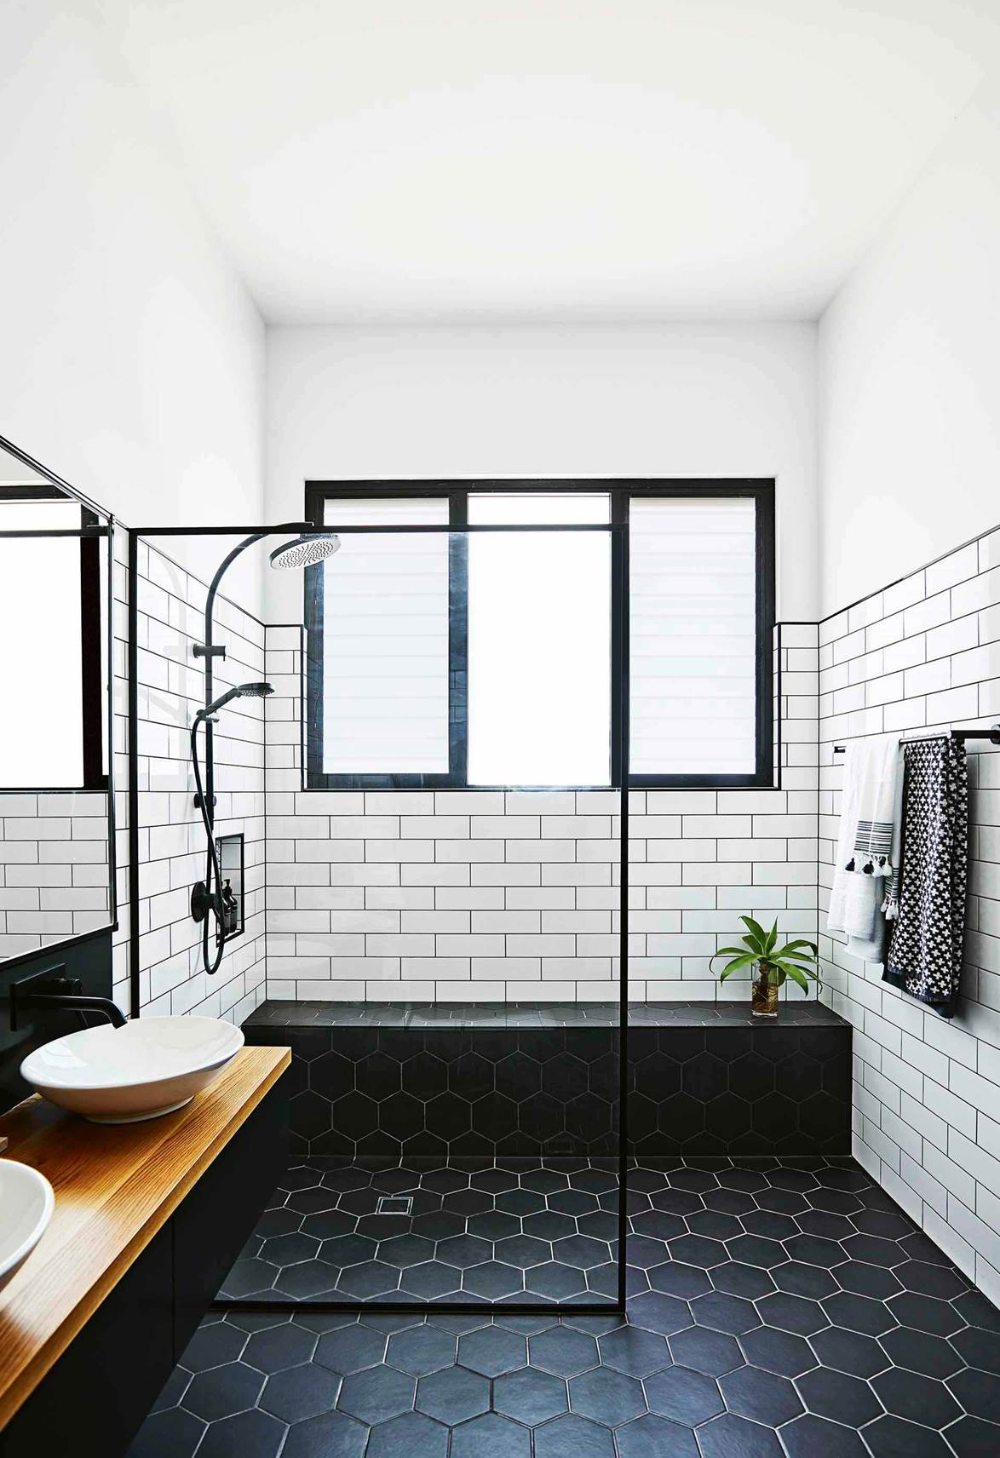 15 Stunning Walk In Shower Ideas To Revamp Your Bathroom With In 2020 Modern Bathroom Tile Small Bathroom Makeover Bathrooms Remodel